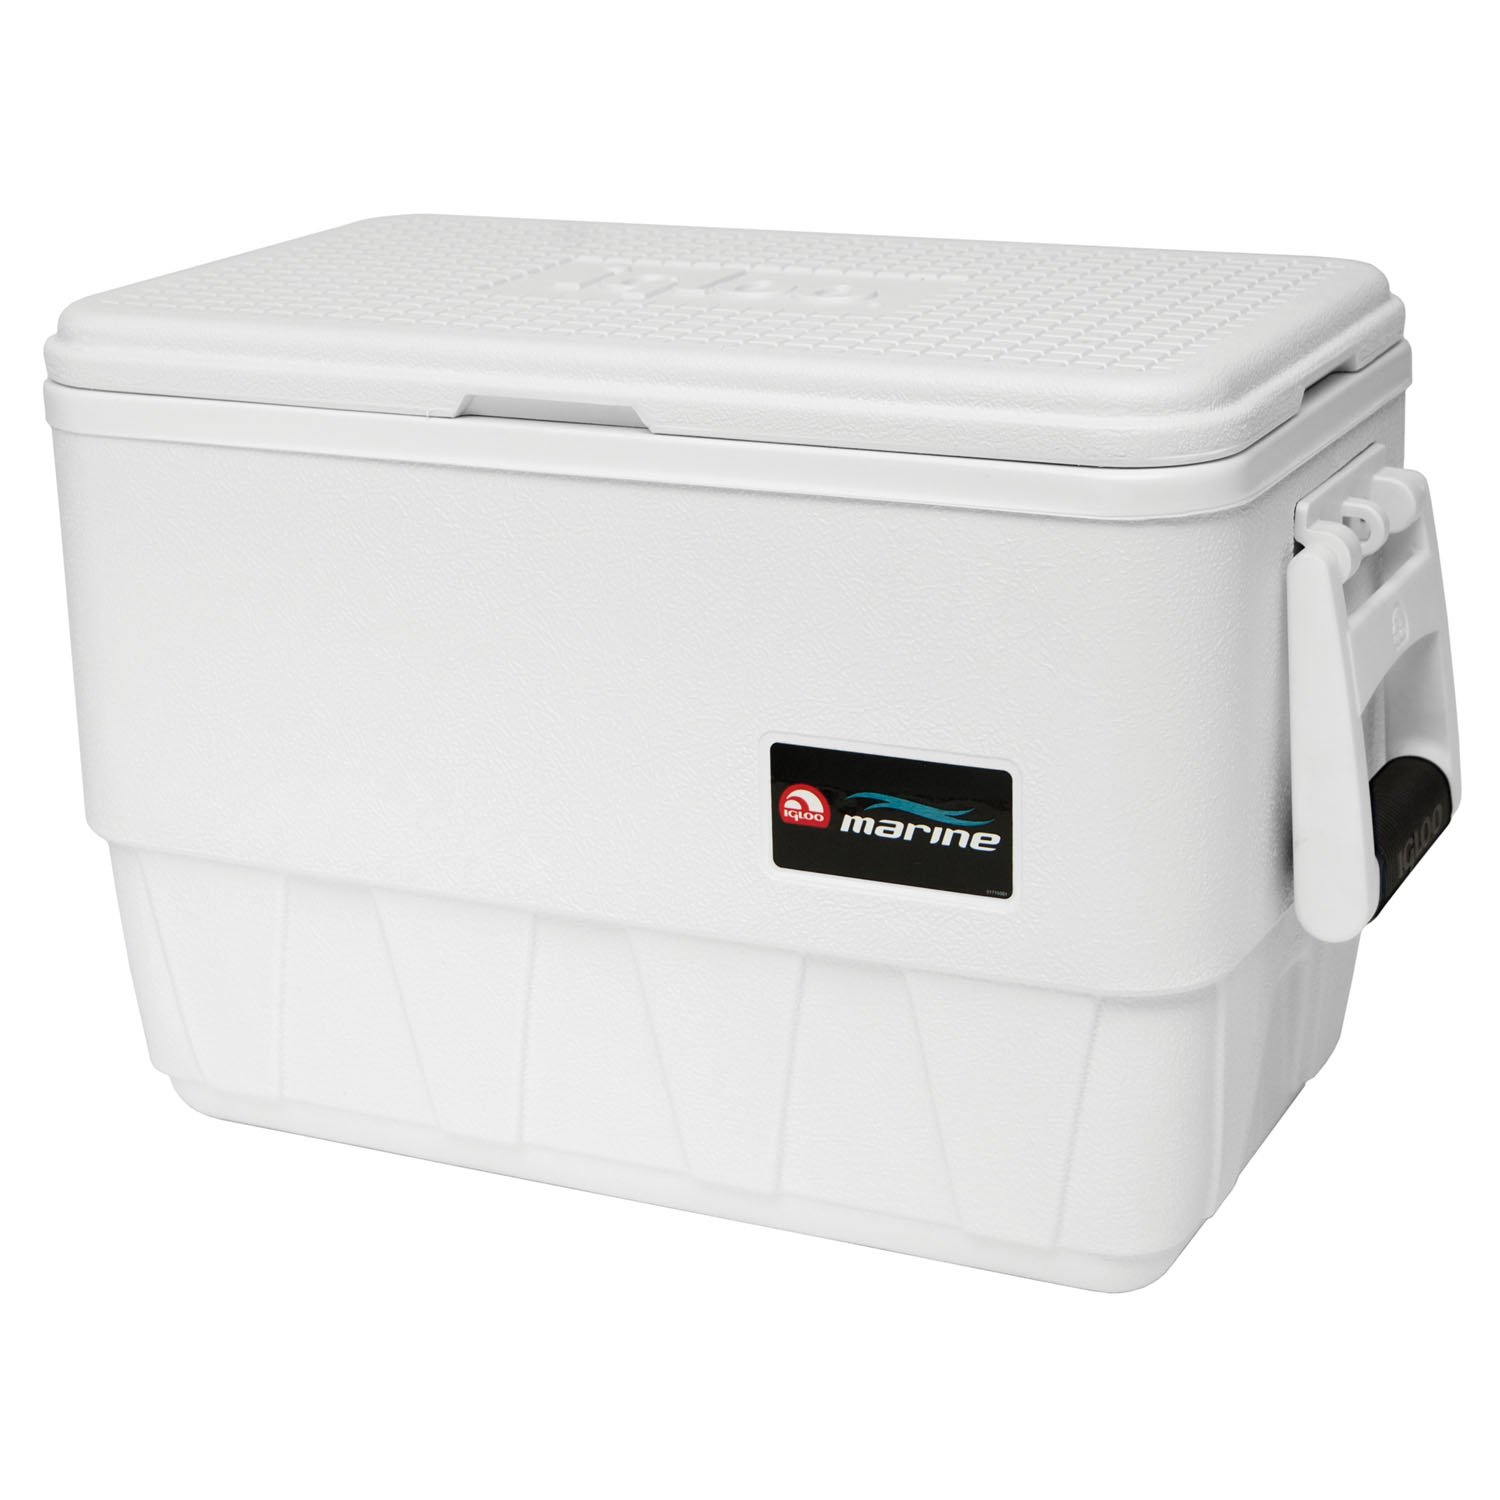 Igloo Marine Ultra Cooler сумка холодильник igloo playmate elite ultra 15 lt blue